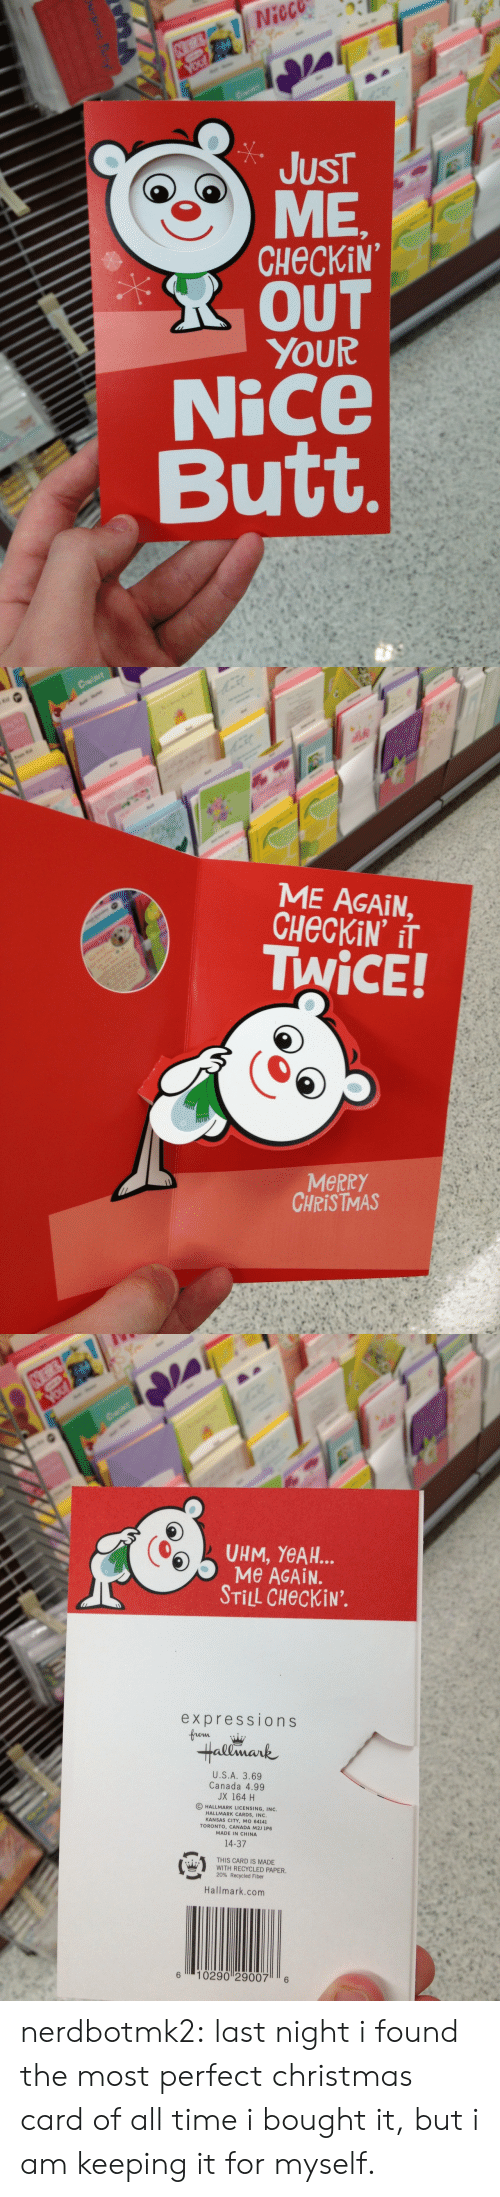 christmas-card: Nieco  JUST  CHECKiN  R OUT  YOUR  Nice  Butt   ME AGAIN,  TWiCE!  MeRRY  CHRISTMAS   UHM, YeAH..  Me AGAiN.  STİLL CHeckiN.  expressions  Hallmark  U.S.A. 3.69  Canada 4.99  JX 164 H  O HALLMARK LICENSING, INC.  HALLMARK CARDS, INC  KANSAS CITY, MO 64141  TORONTO, CANADA M2J 1P6  MADE IN CHINA  14-37  姭  THIS CARD IS MADE  WITH RECYCLED PAPER.  20% Recycled Fiber  es  Hallmark.com  6 10290 29007 6 nerdbotmk2:  last night i found the most perfect christmas card of all time i bought it, but i am keeping it for myself.